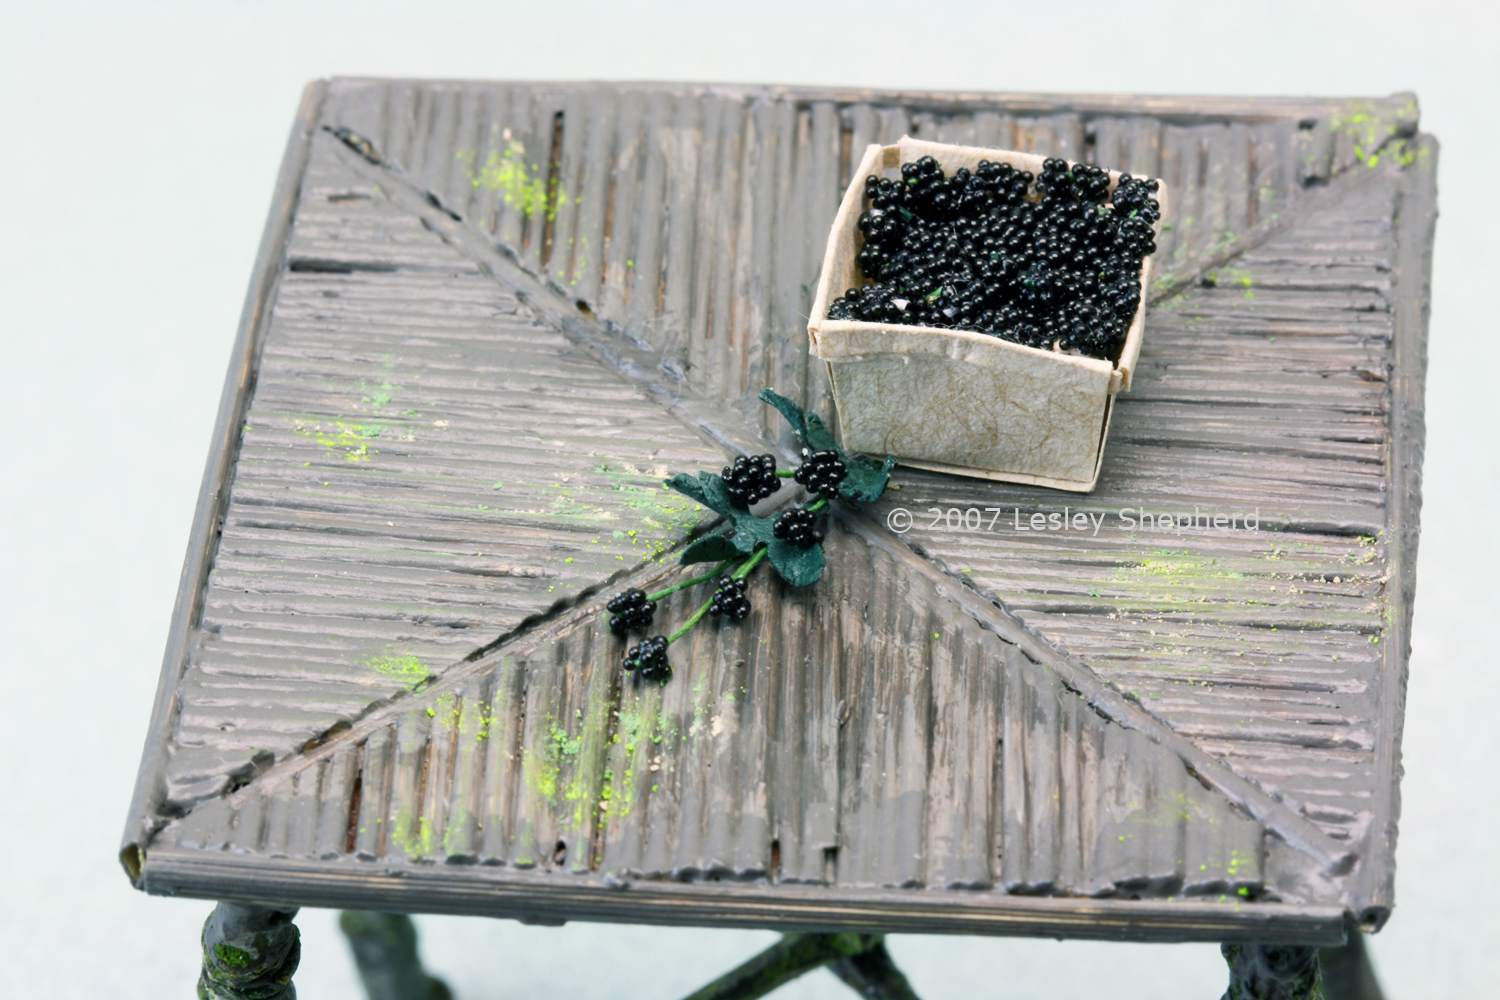 1:12 scale blackberries in a fruit basket